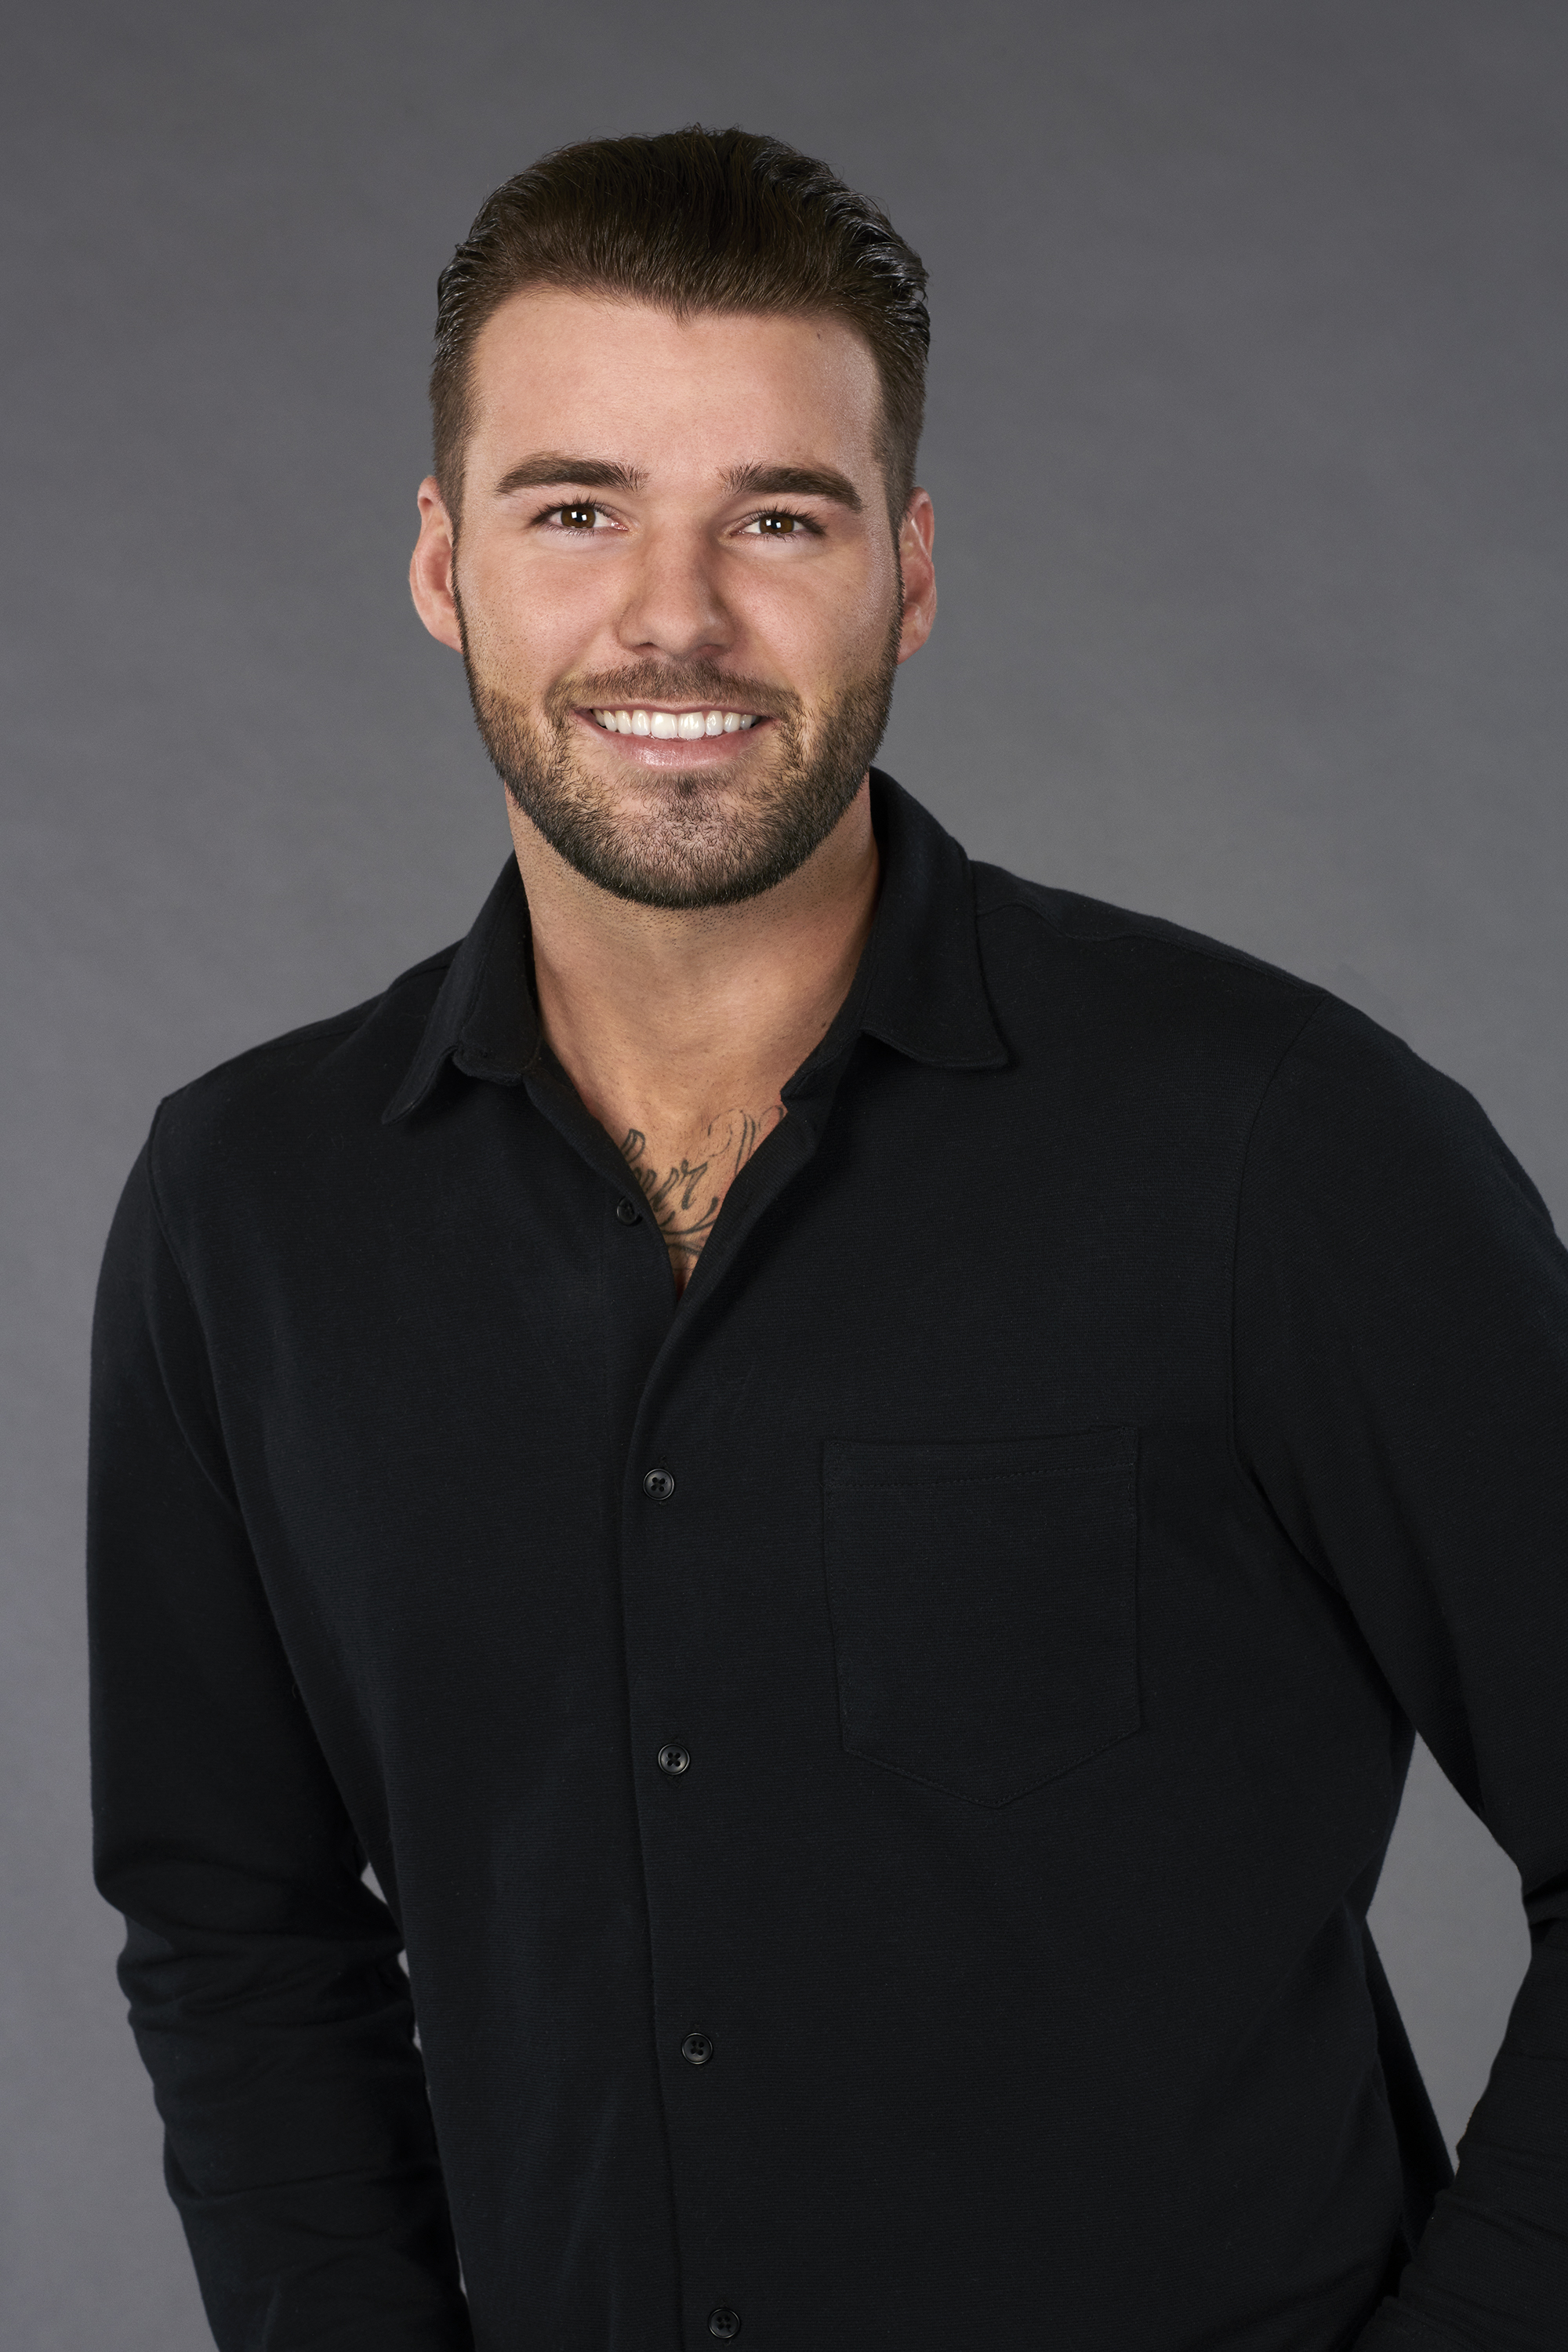 Bachelorette 15 - Matt Spraggins - *Sleuthing Spoilers* - Page 2 12f44e15-a467-442f-9230-4d3f1dded79e